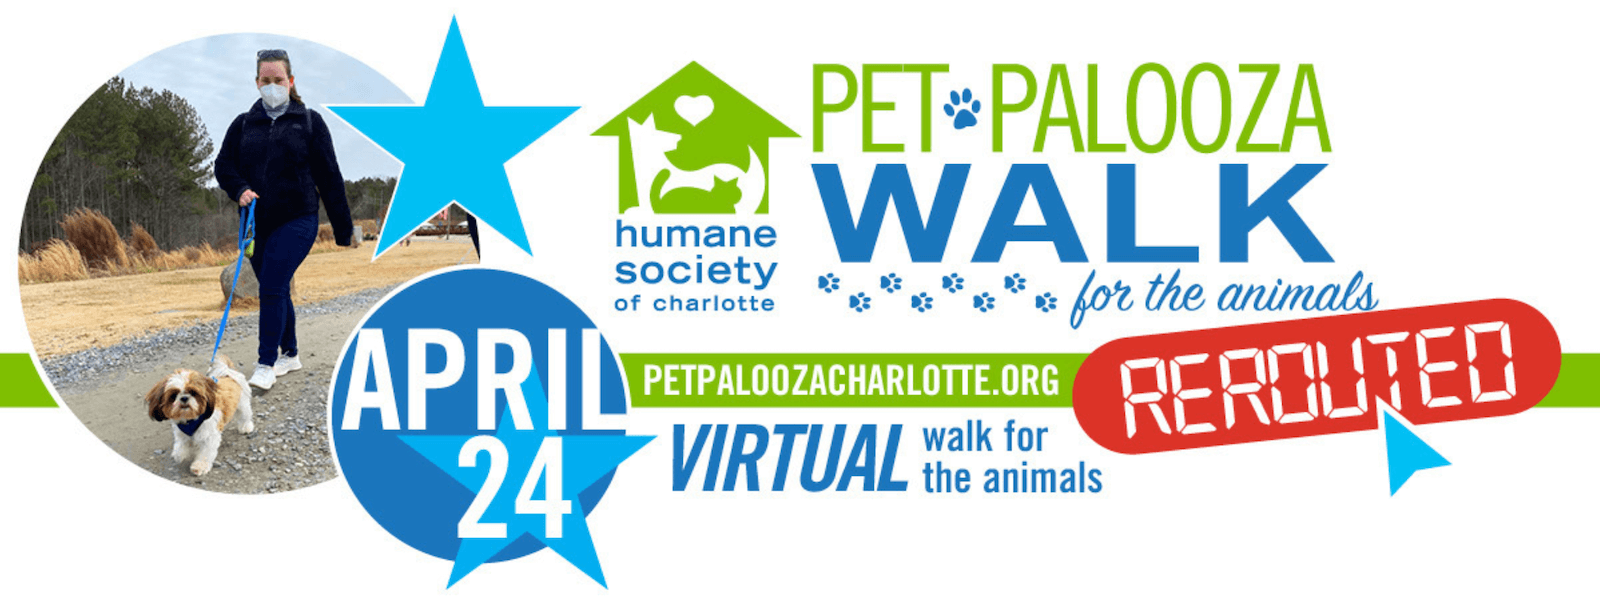 Screenshot of the website header of the Pet Palooza Rerouted microsite, which informs people of the date of the event.